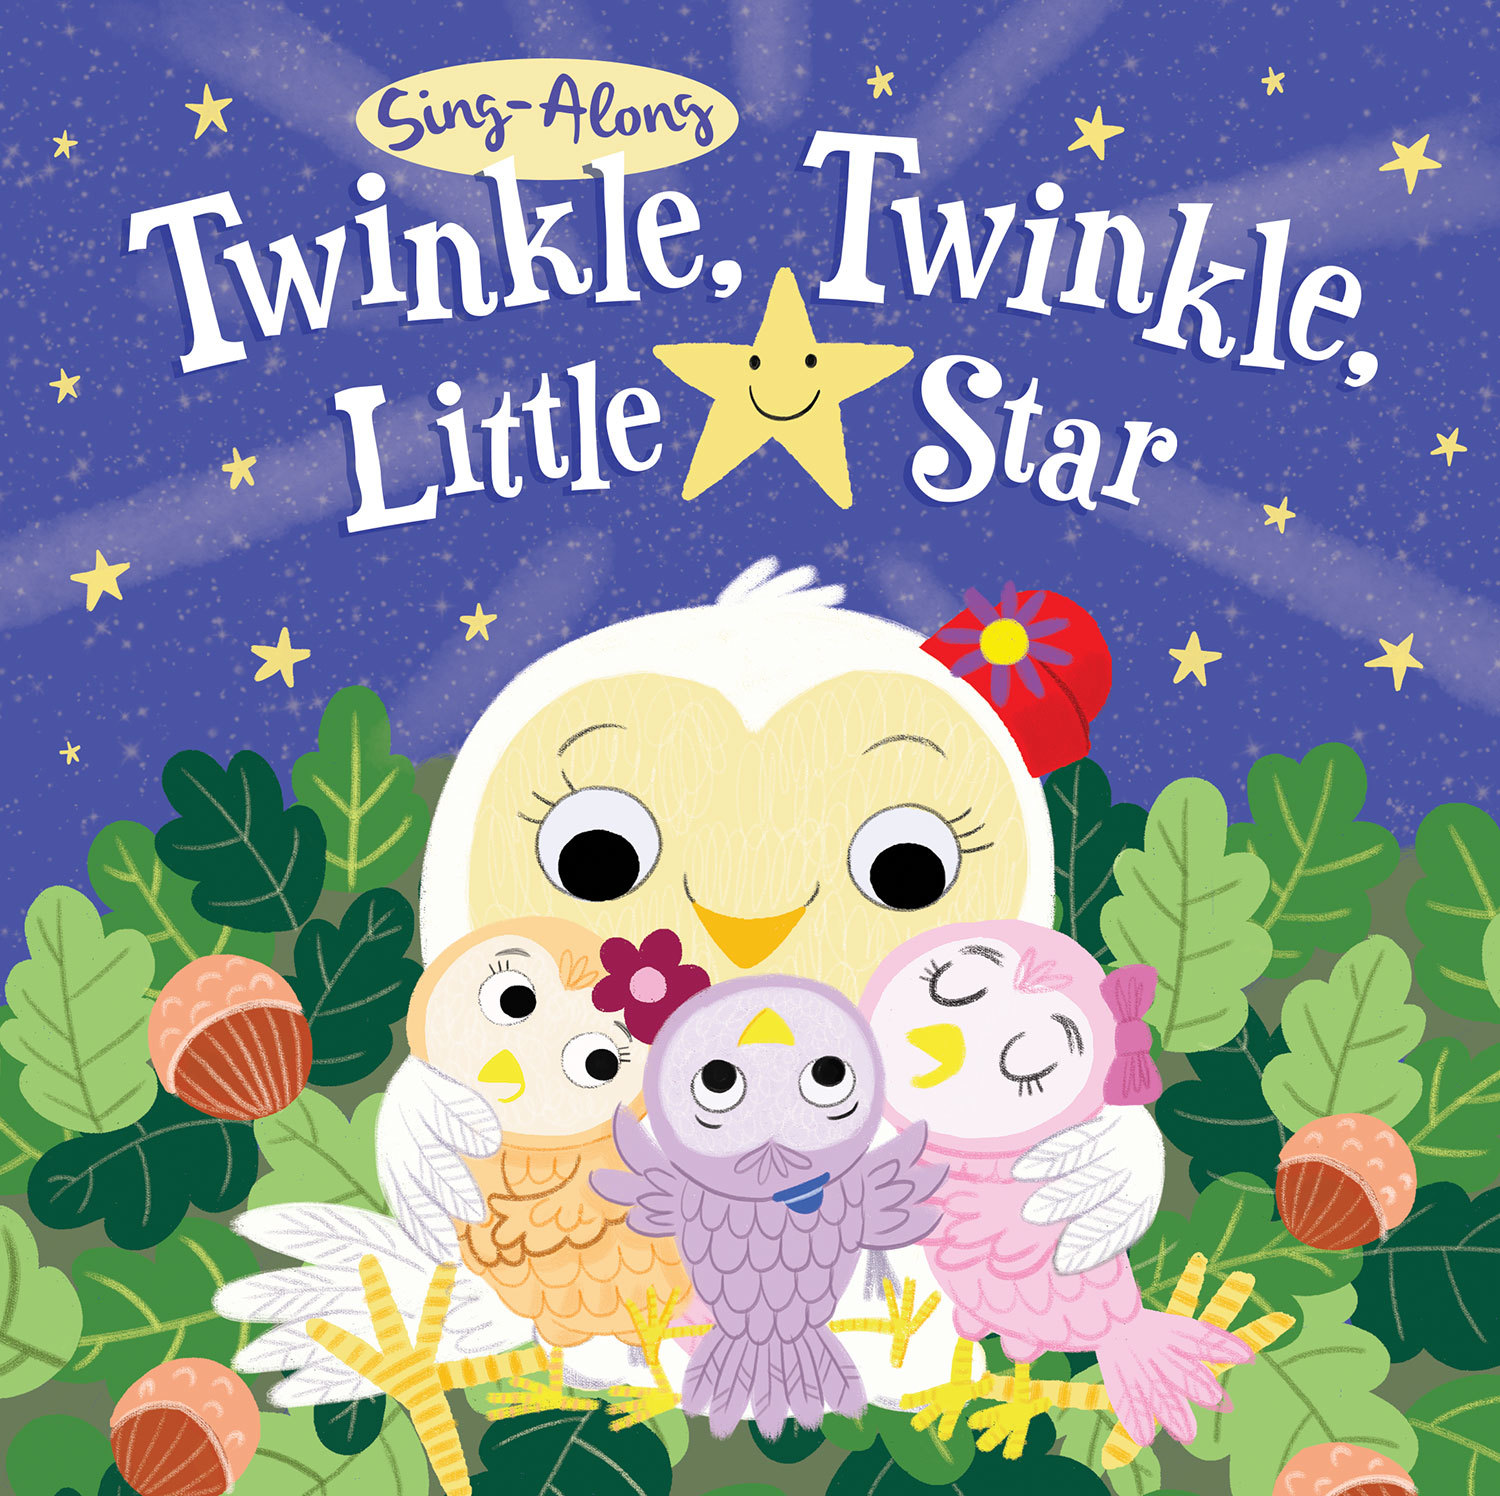 Sing-Along Twinkle, Twinkle, Little Star